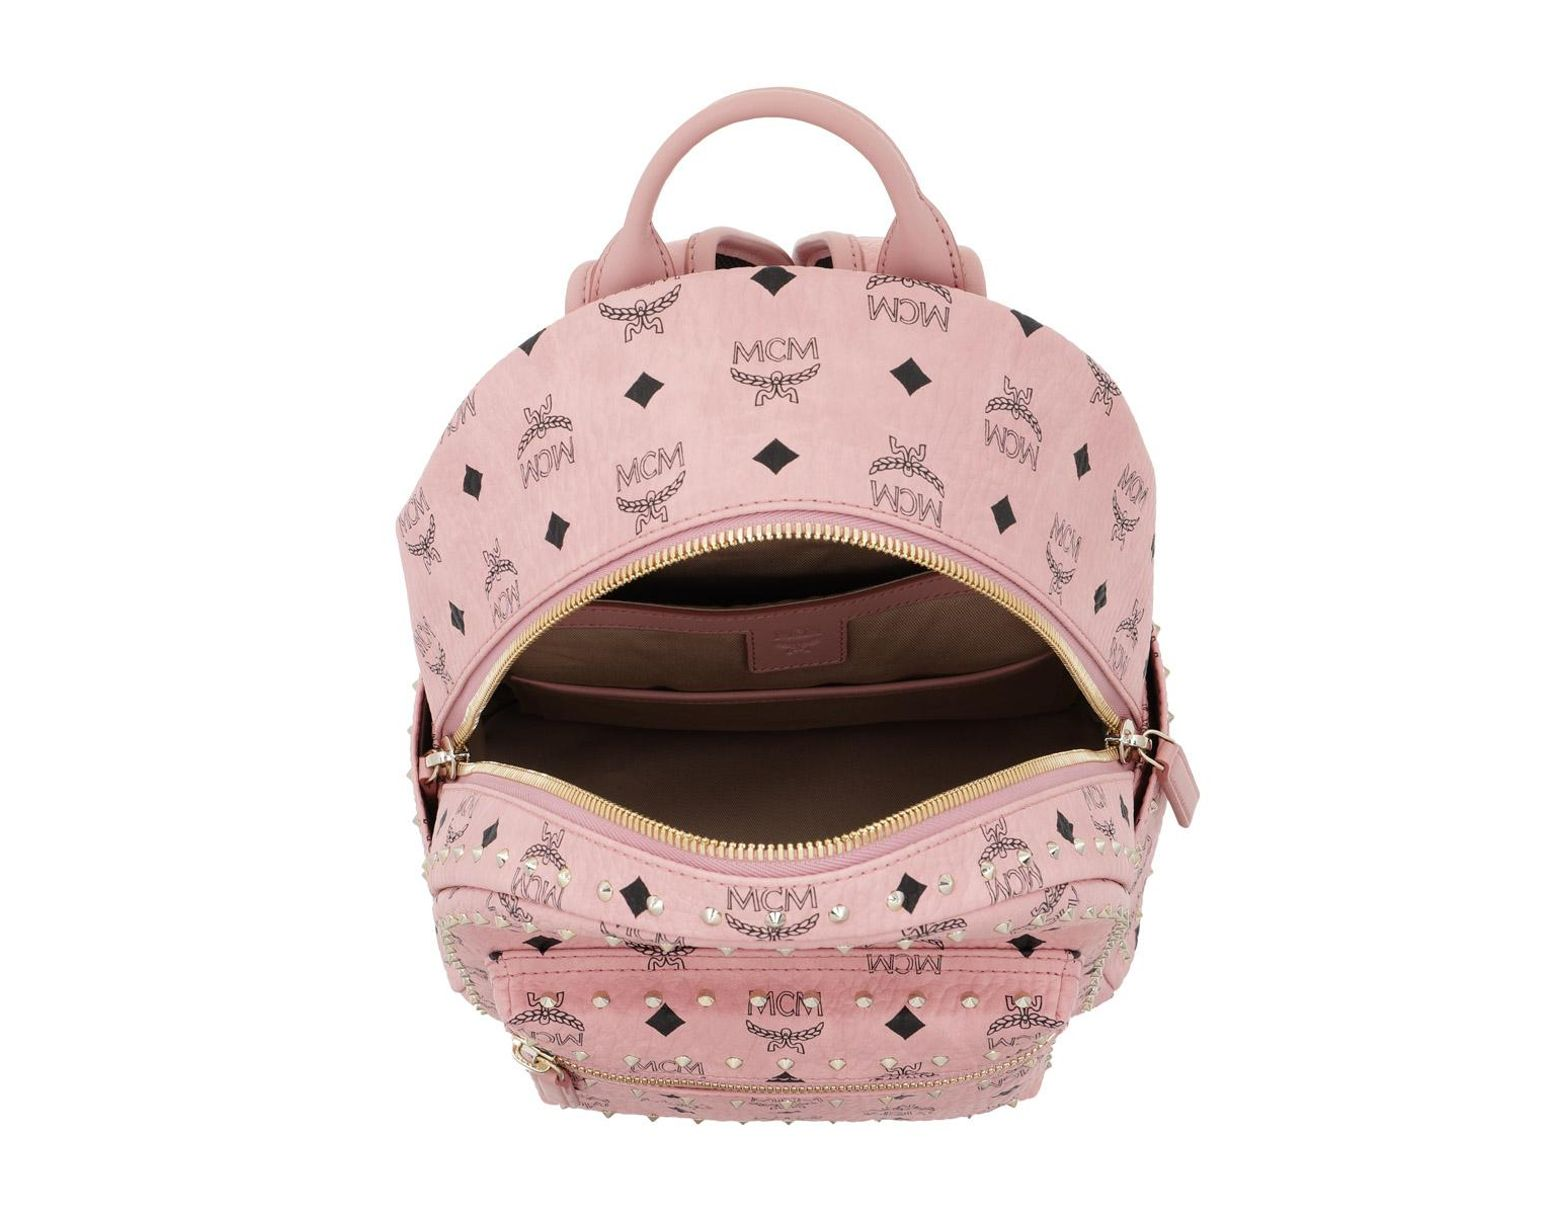 bcf7d0805 MCM Stark Outline Studs Backpack Small Soft Pink in Pink - Save 10% - Lyst